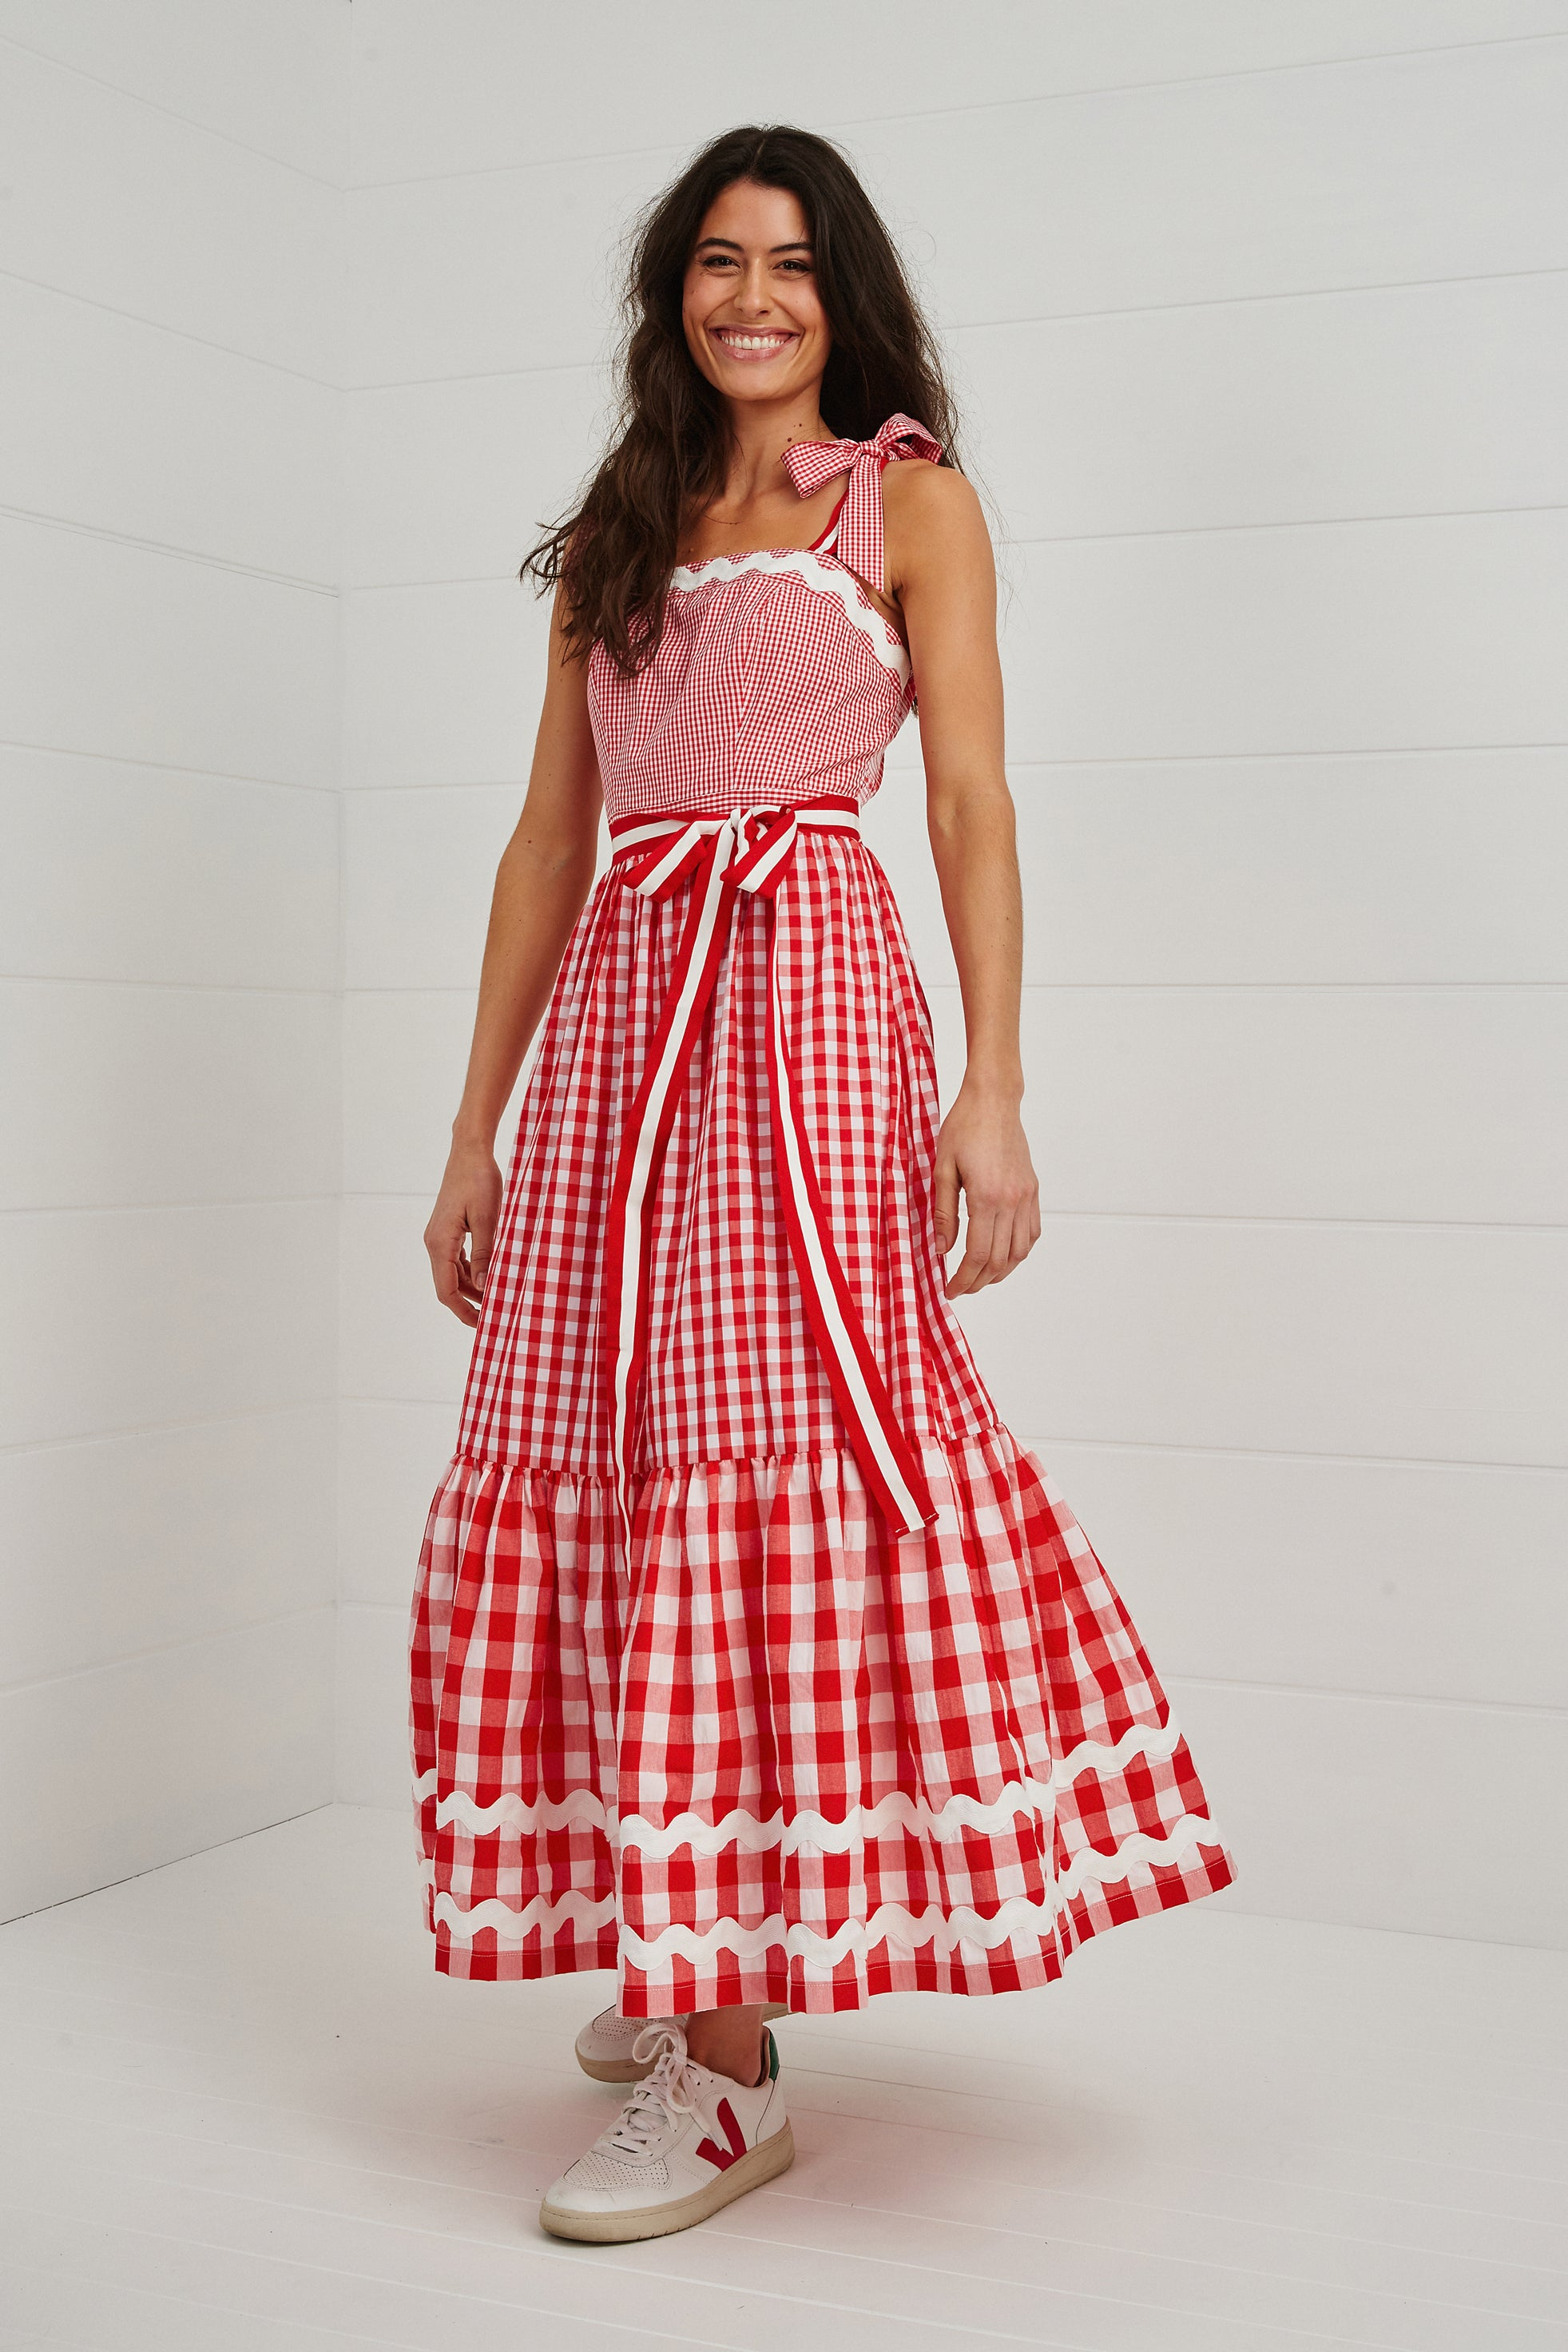 'THE JINGLE GINGLE' RUFFLE MAXI DRESS